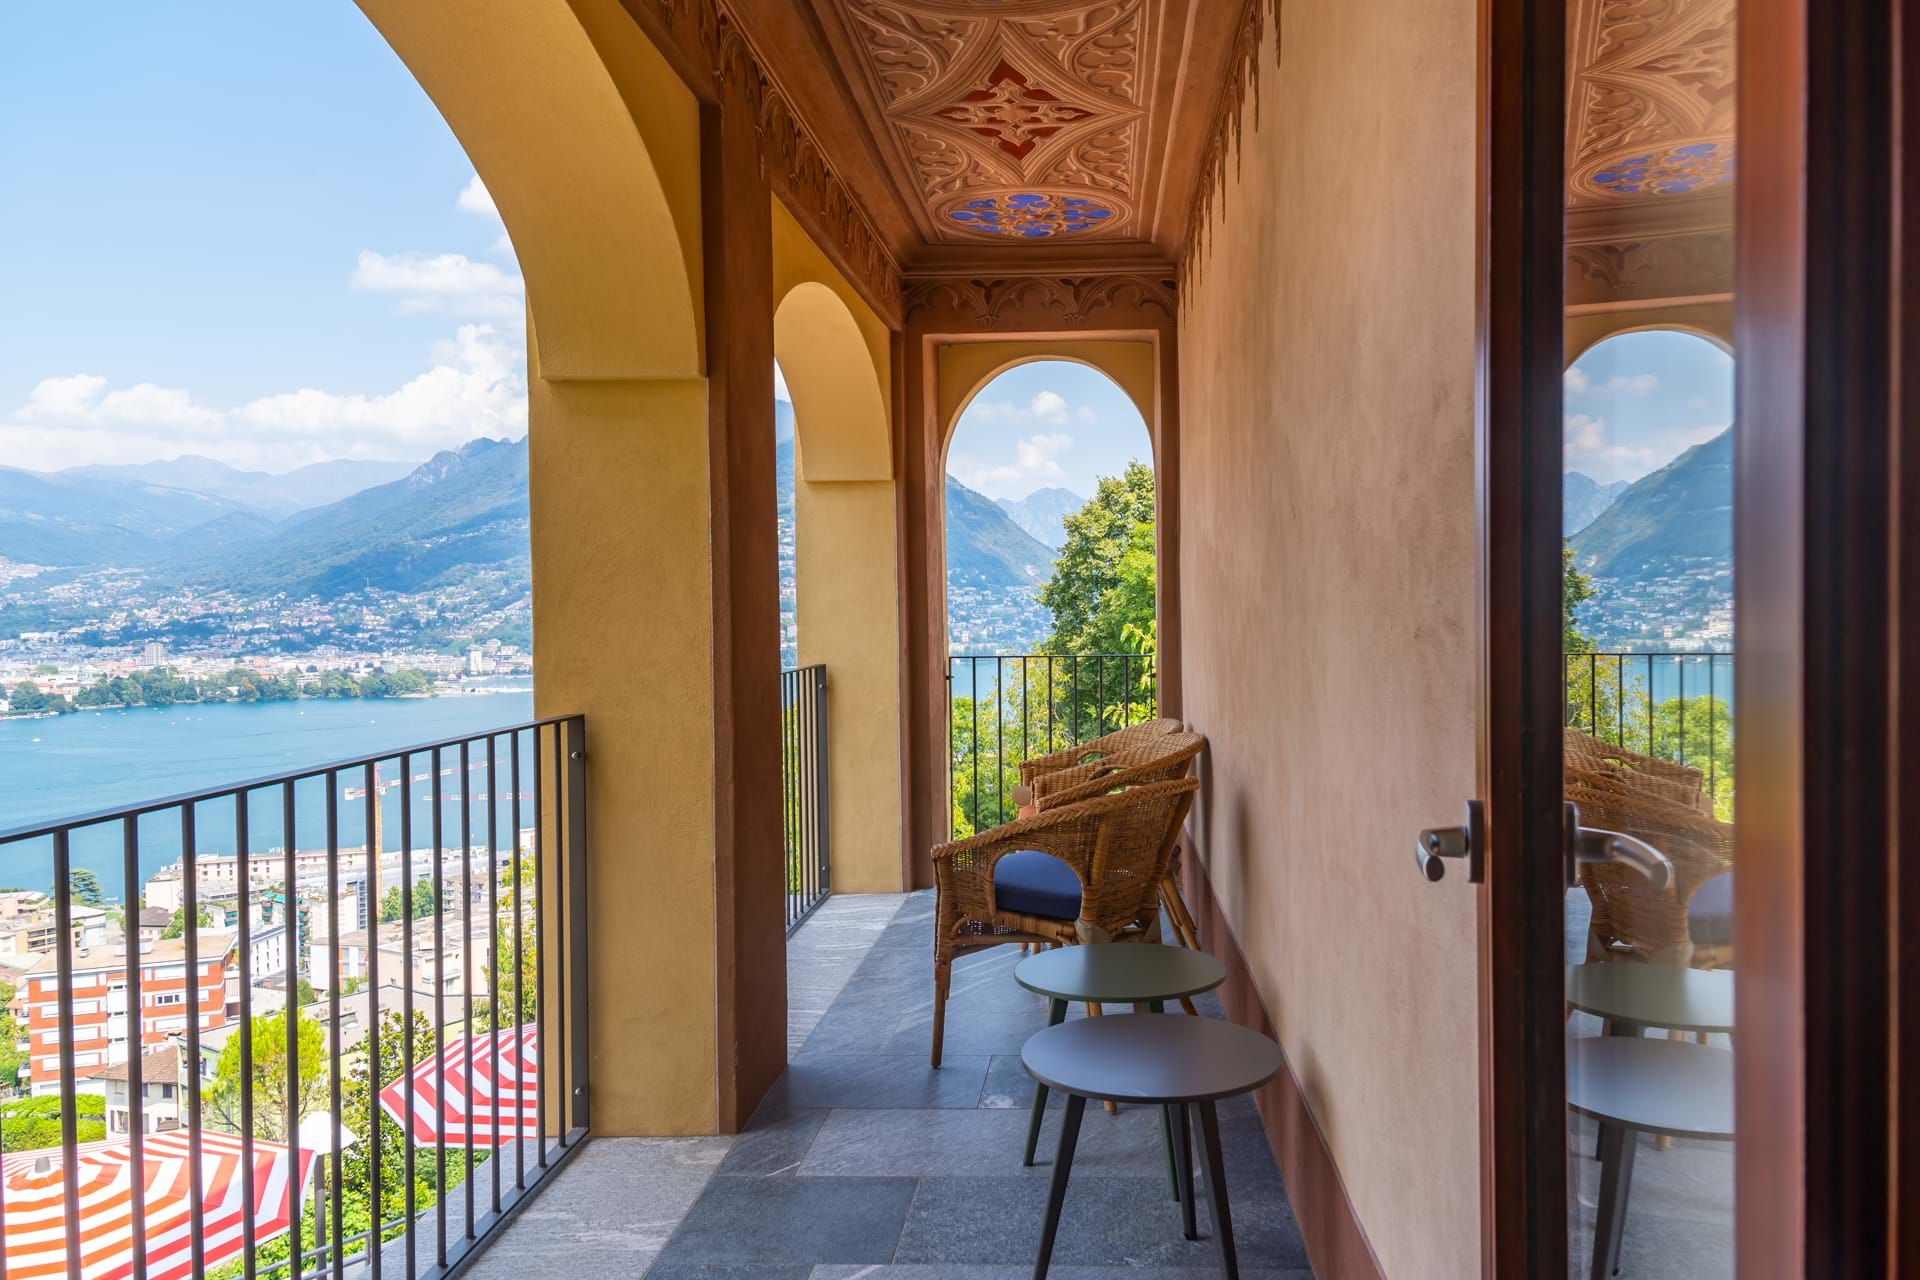 Slideshow_Bigatt_Hotel_and_Restaurant_Lugano_16.jpg